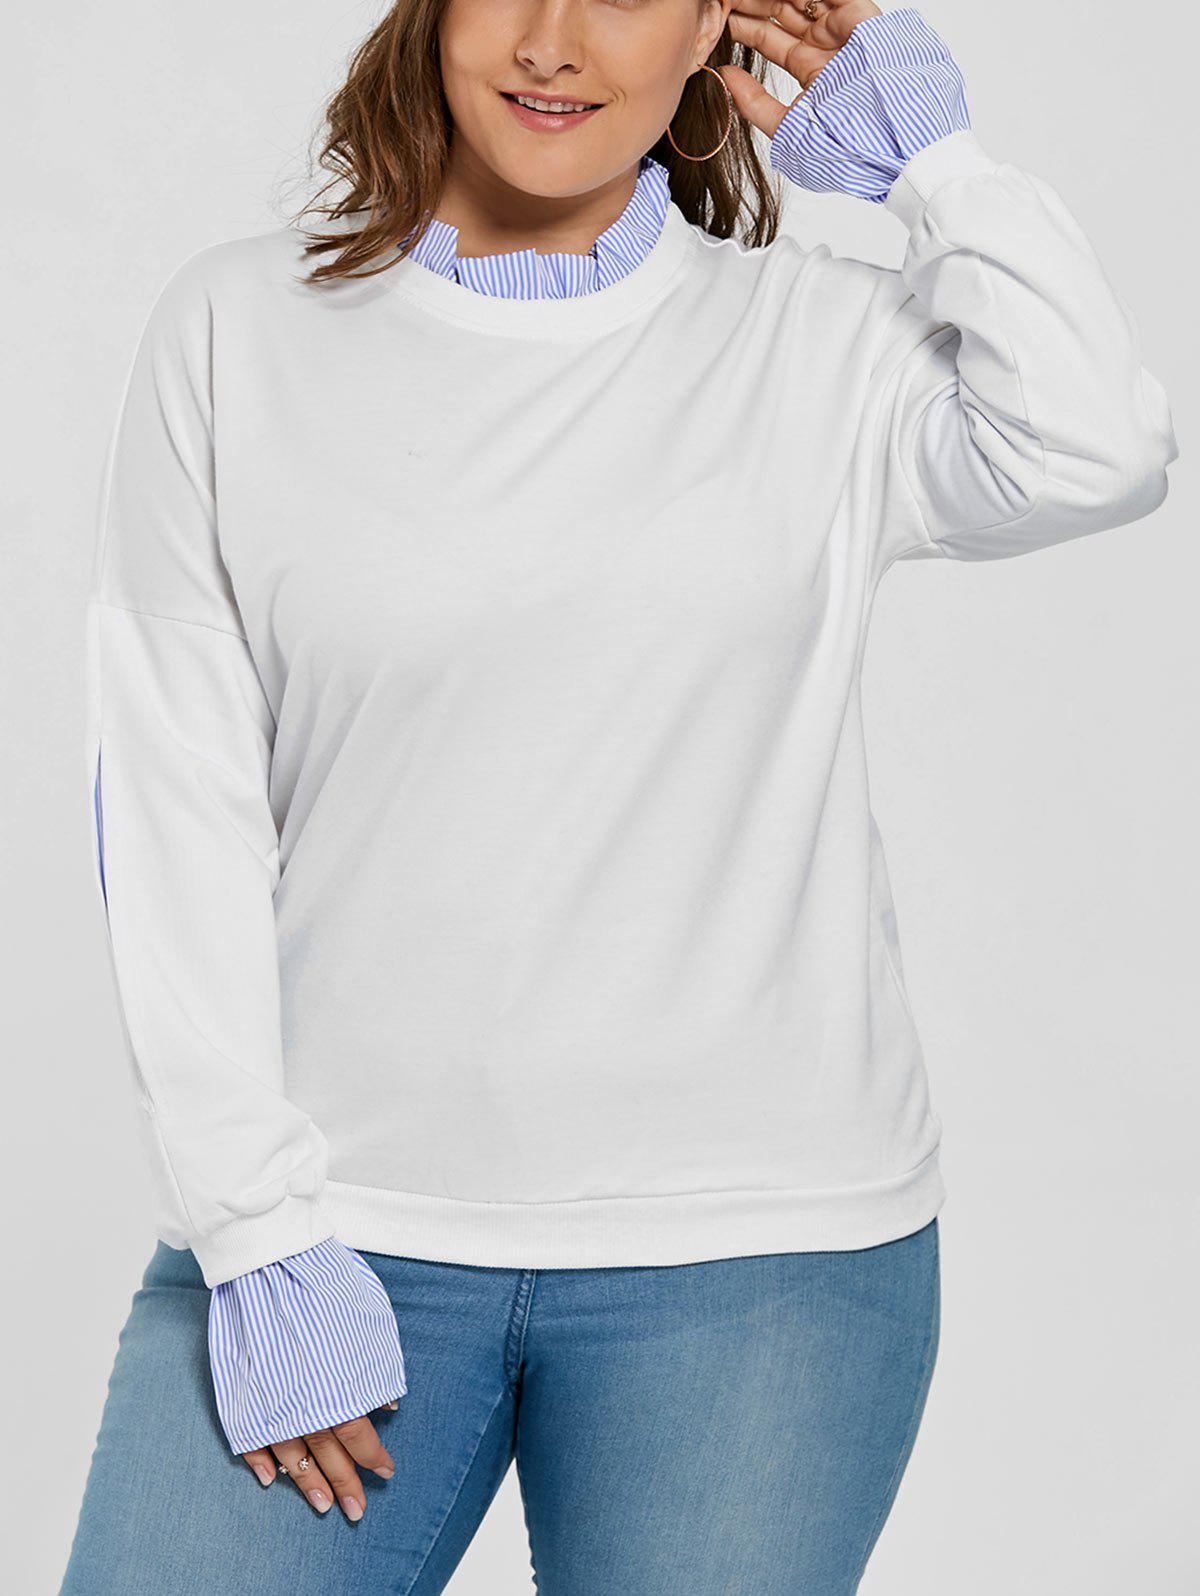 Plus Size Drop Shoulder Ruffle Neck Sweatshirt 1080p 720p security network cctv wifi ip camera megapixel hd wireless digital ir infrared night vision system micro sd card